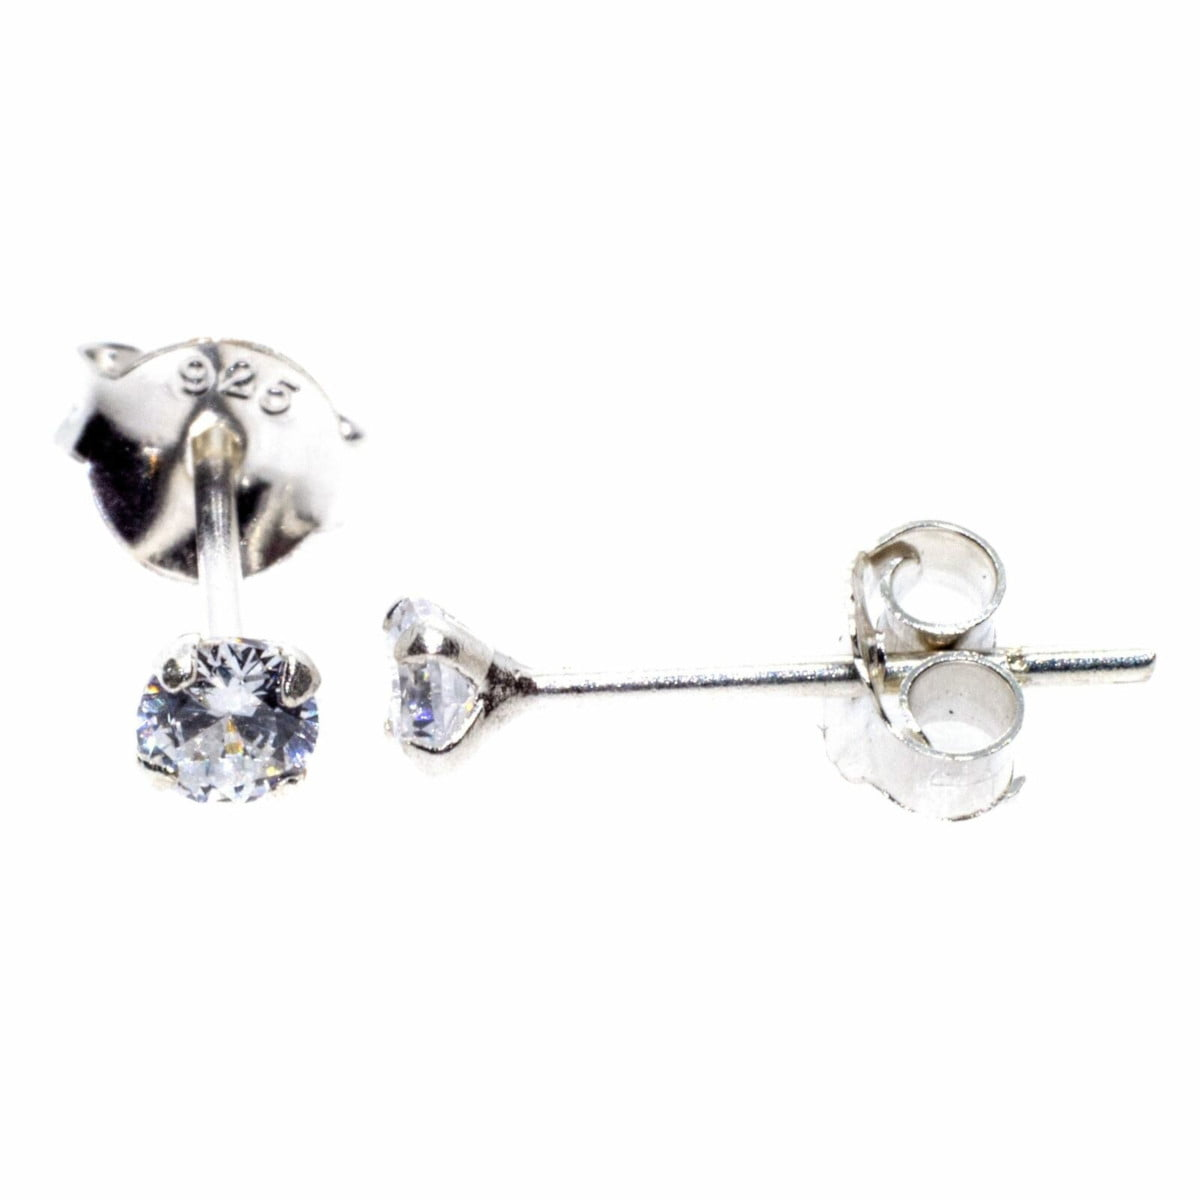 3 mm clear CZ stud round solitaire earrings in sterling silver